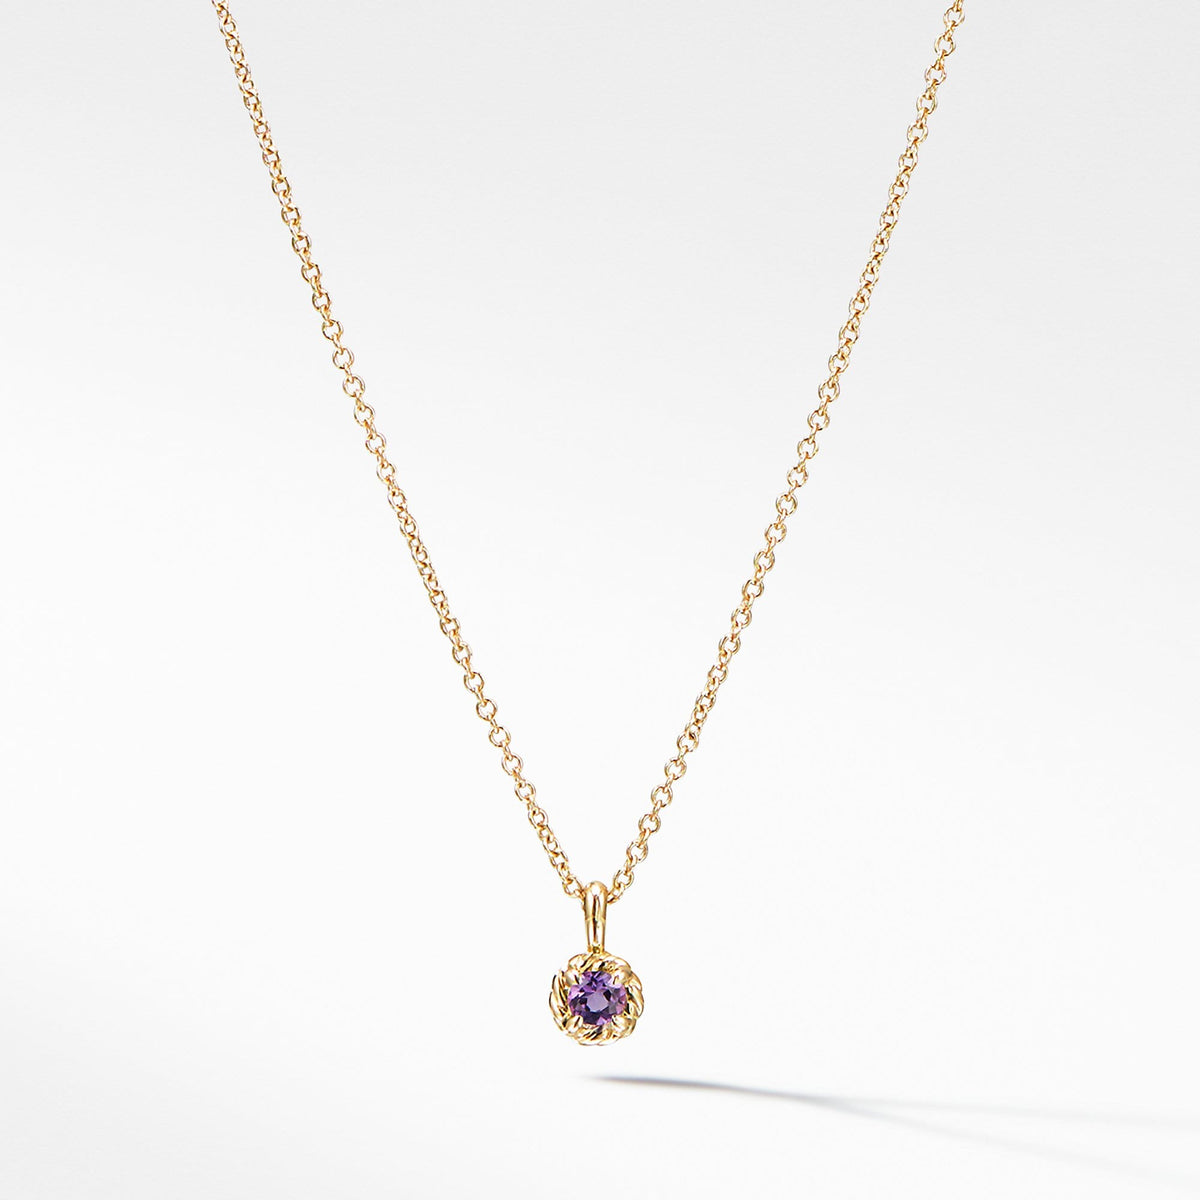 Cable Collectibles Kids Necklace Birthstone Necklace with Amethyst in 18K Gold, 3mm